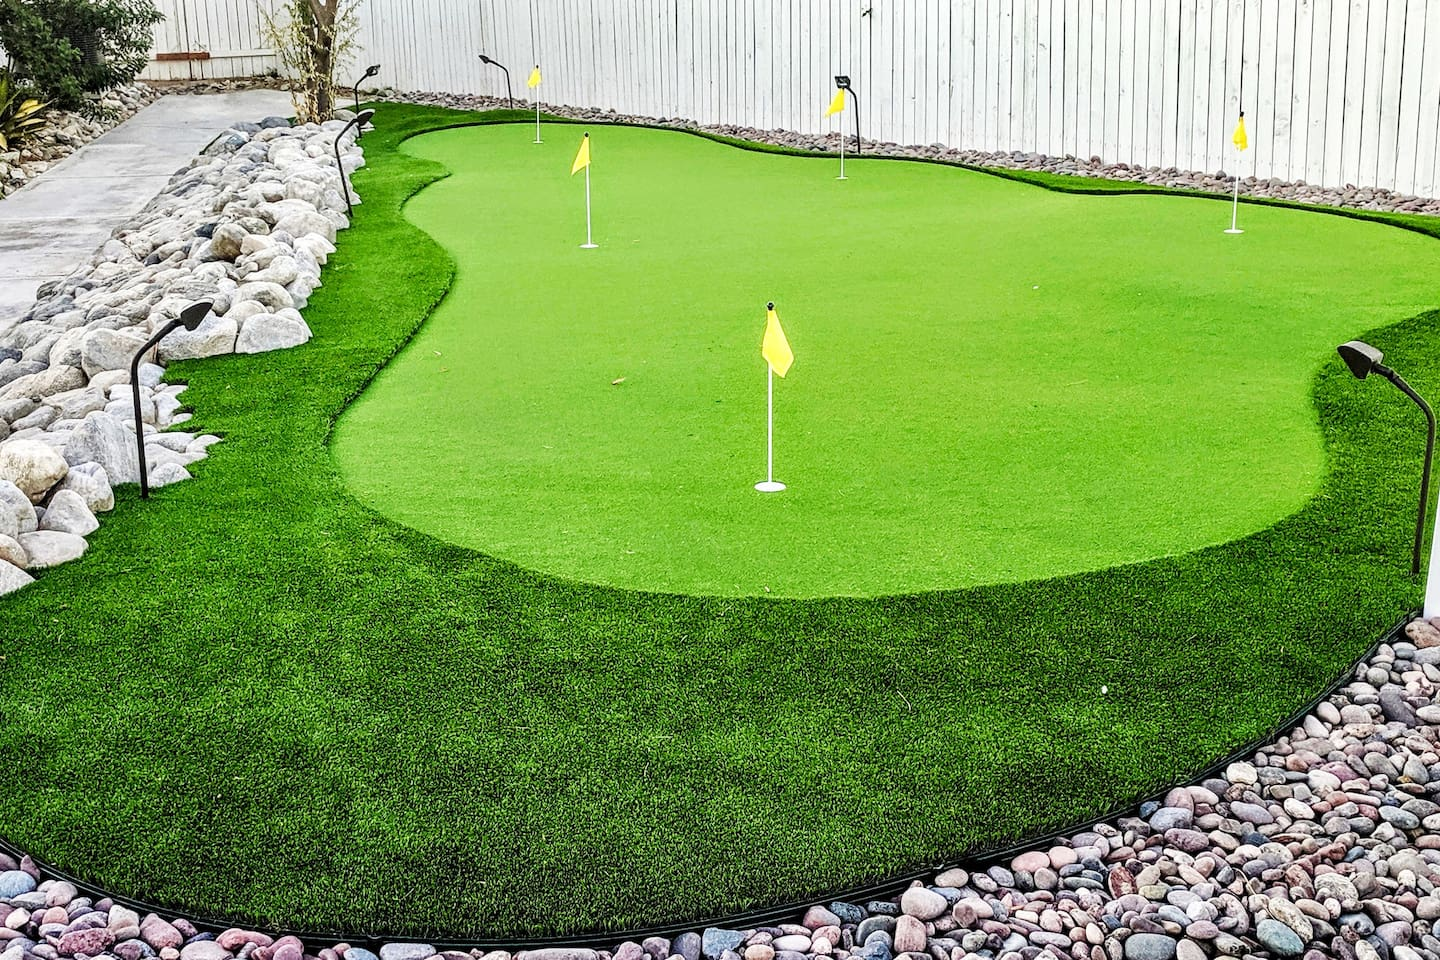 Play 5 holes of mini golf with families and friends